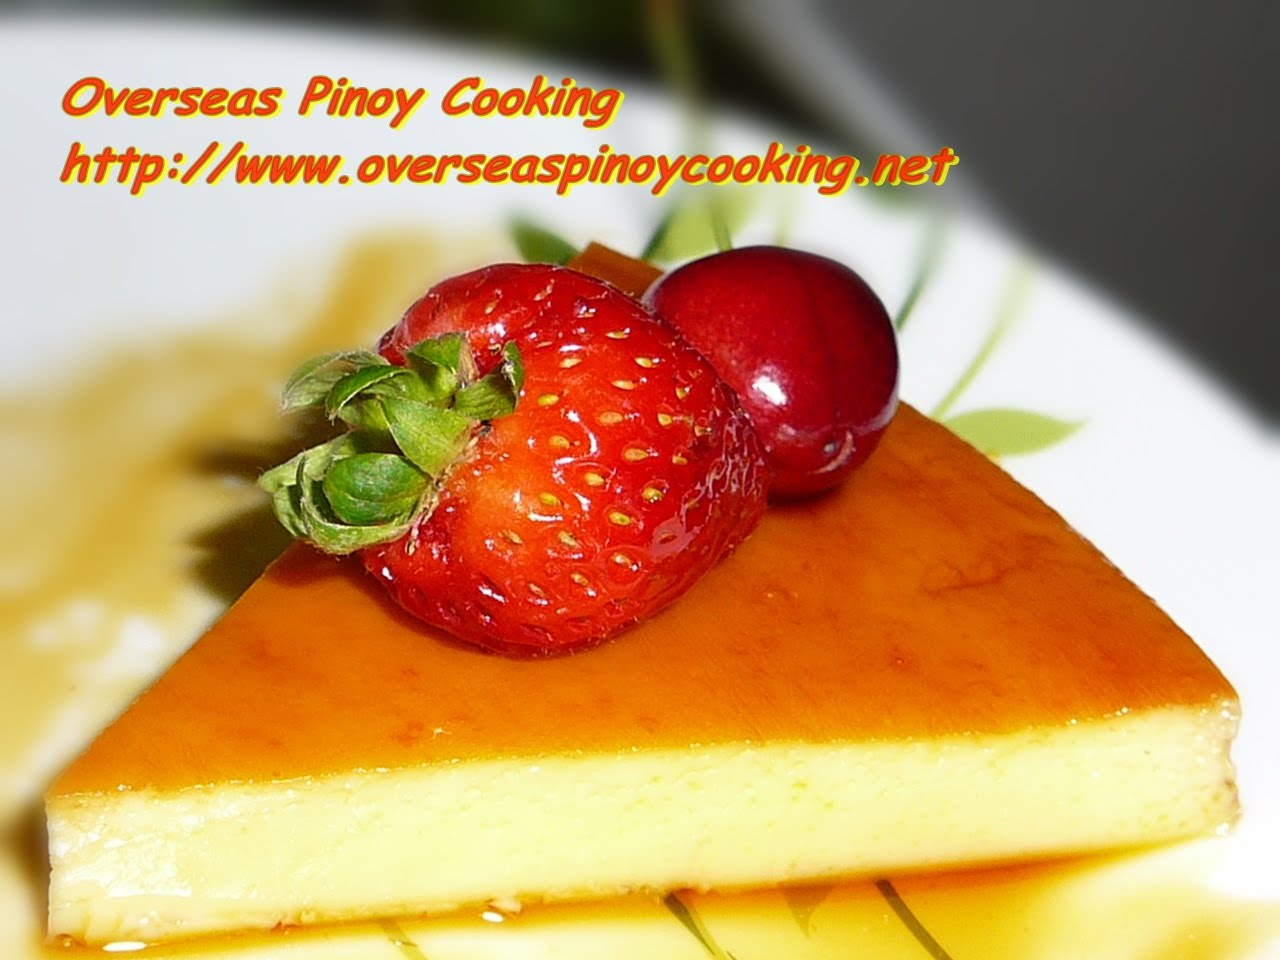 ... flan chestnut flan coconut flan orange flan spanish flan flan with